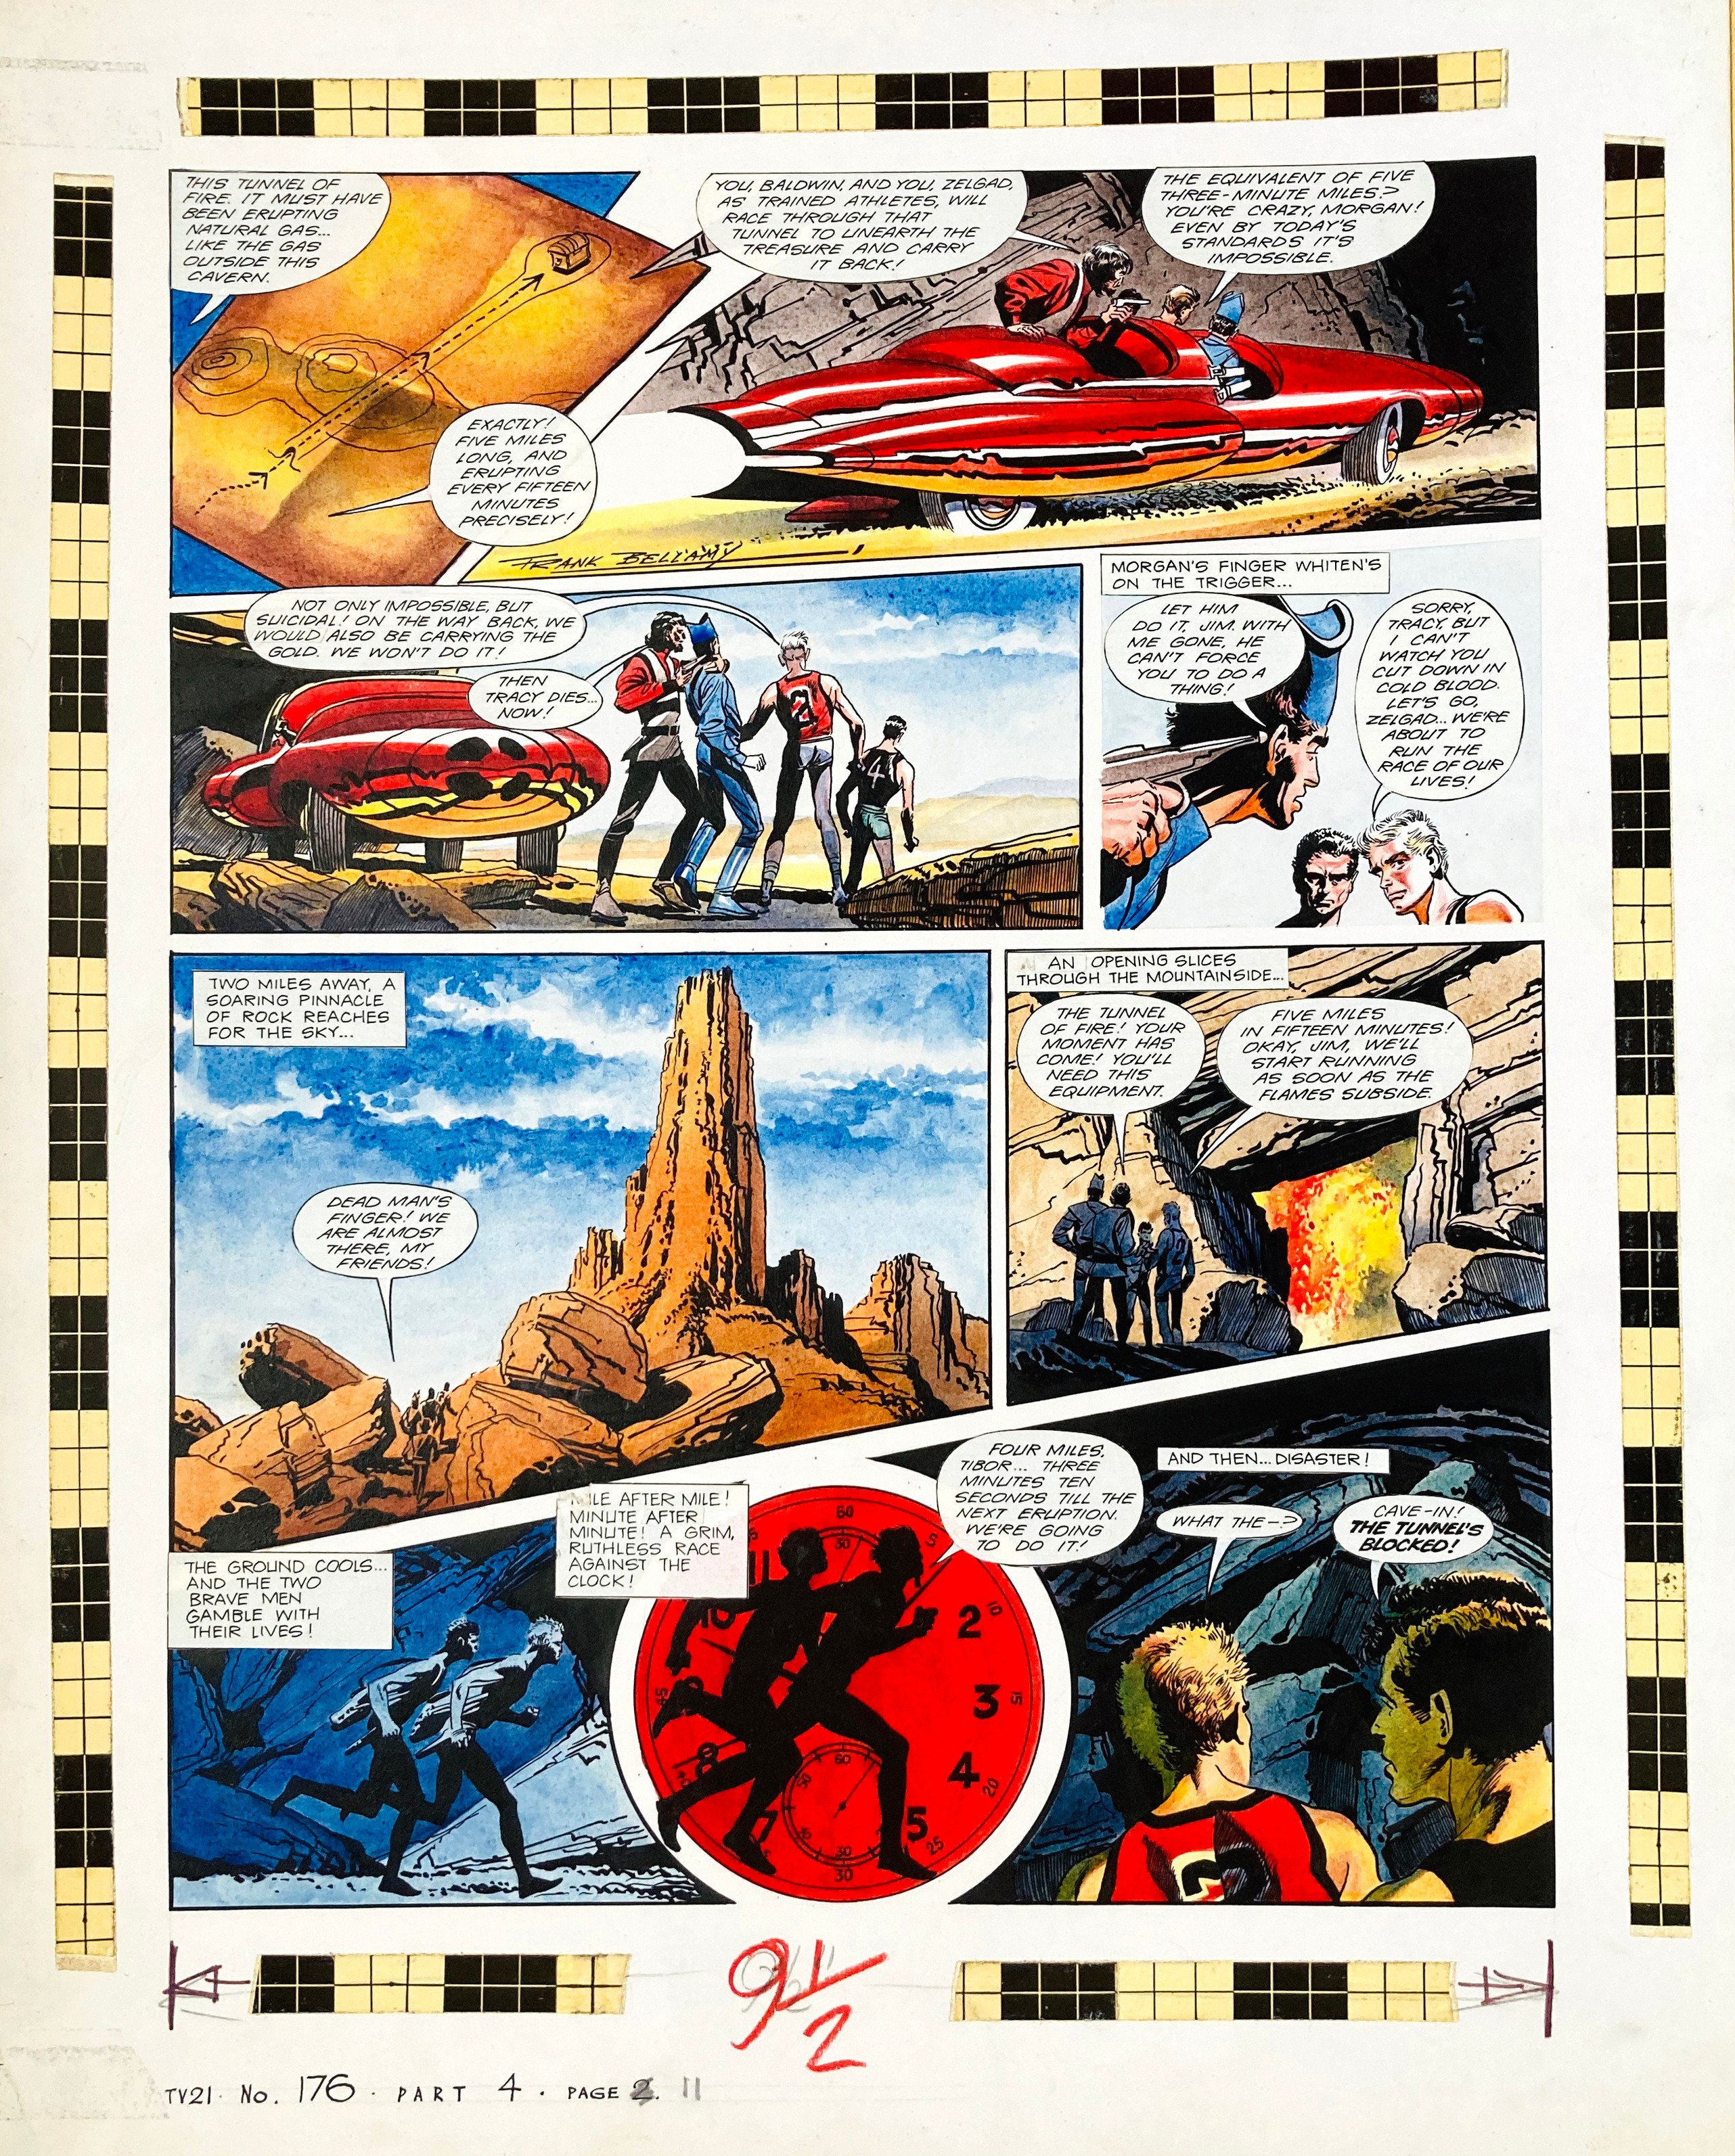 Thunderbirds original artwork (1968) drawn, painted and signed by Frank Bellamy for TV21 No 176. Two